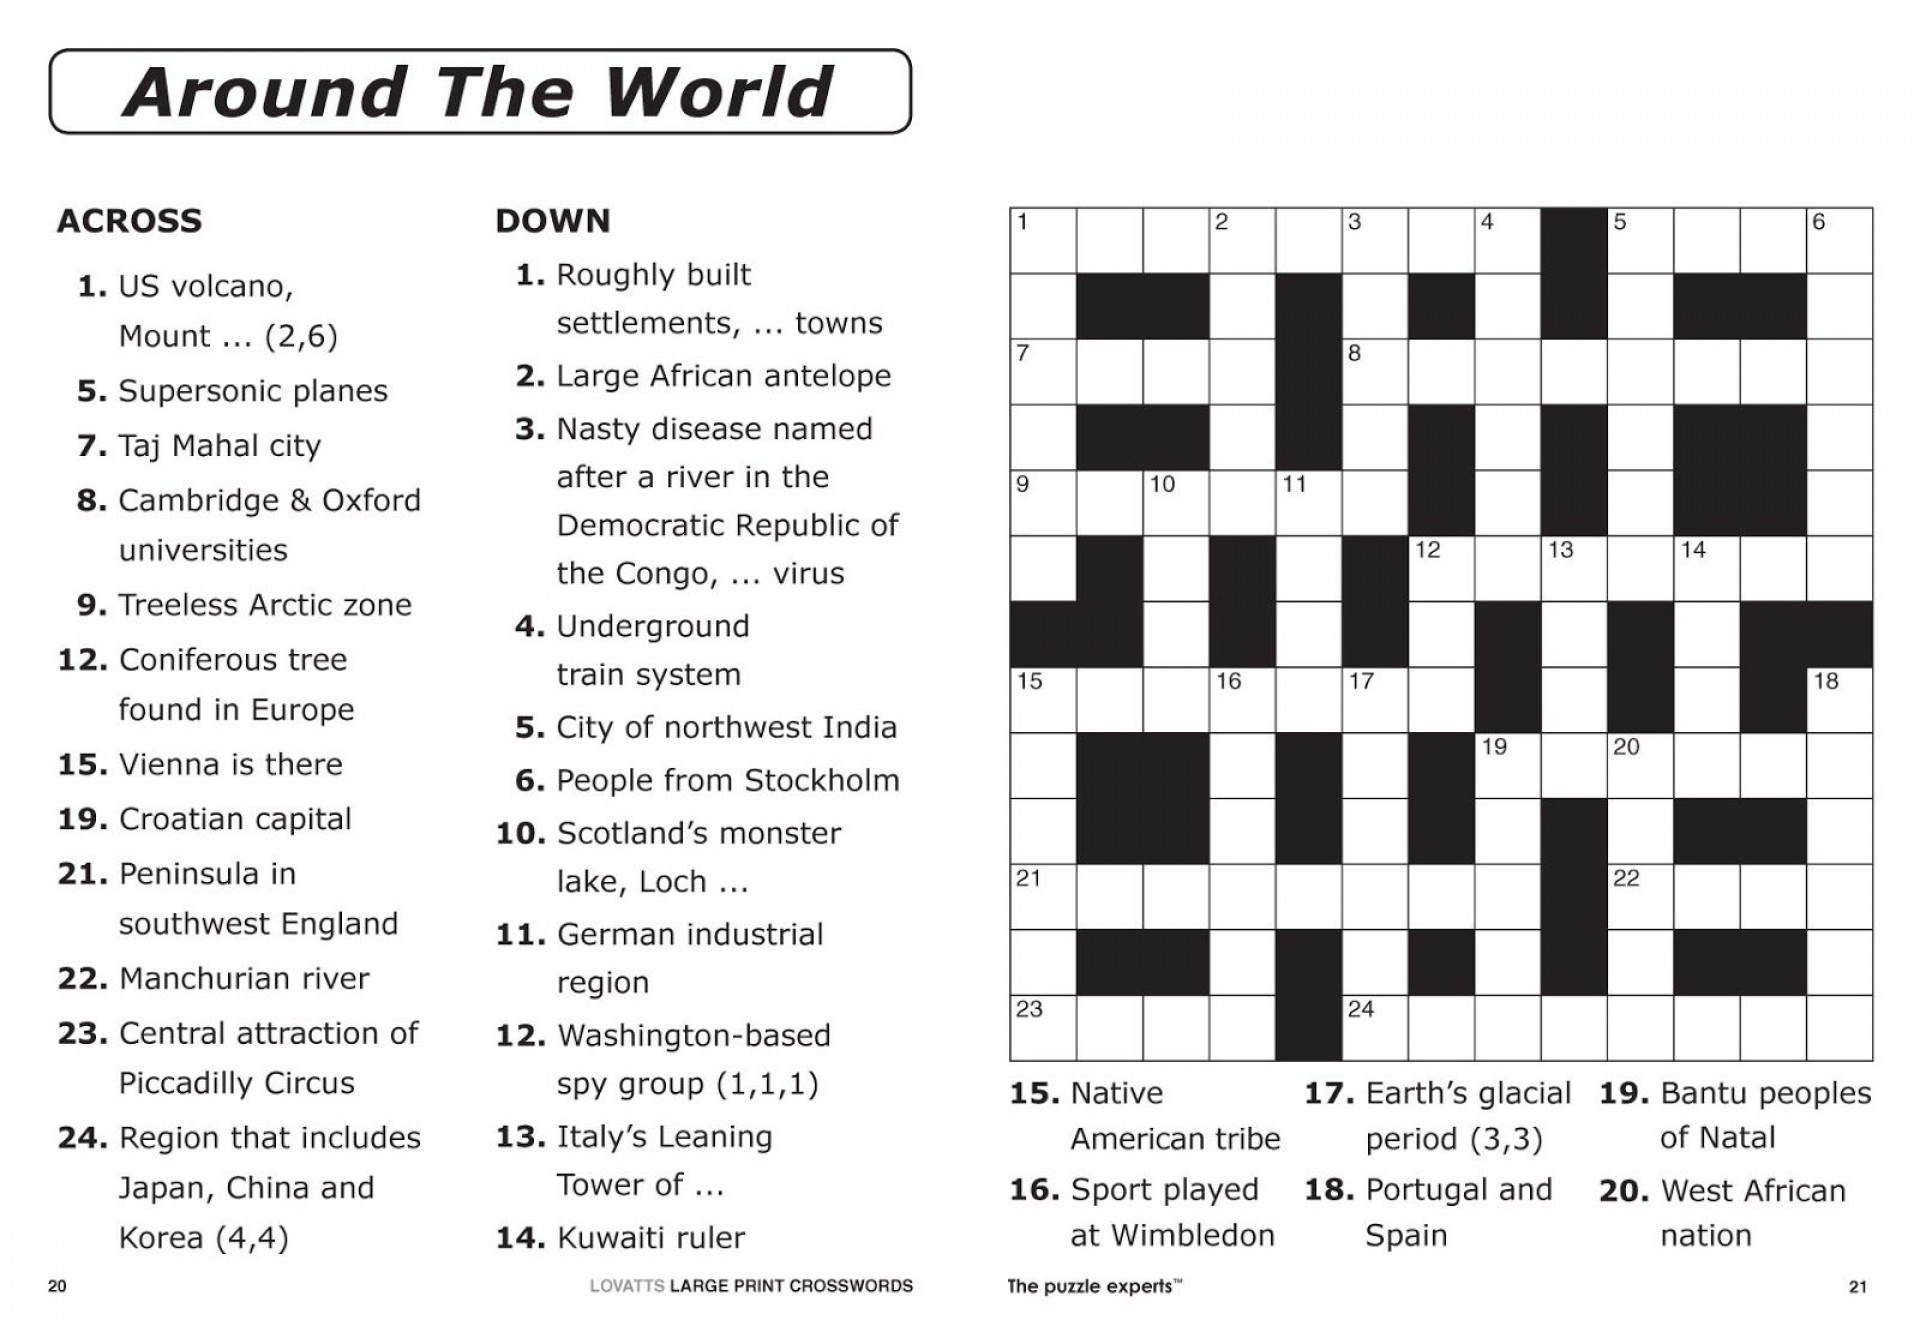 Coloring ~ Coloring Free Large Print Crosswords Easy For Seniors - Joseph Crossword Puzzles Printable